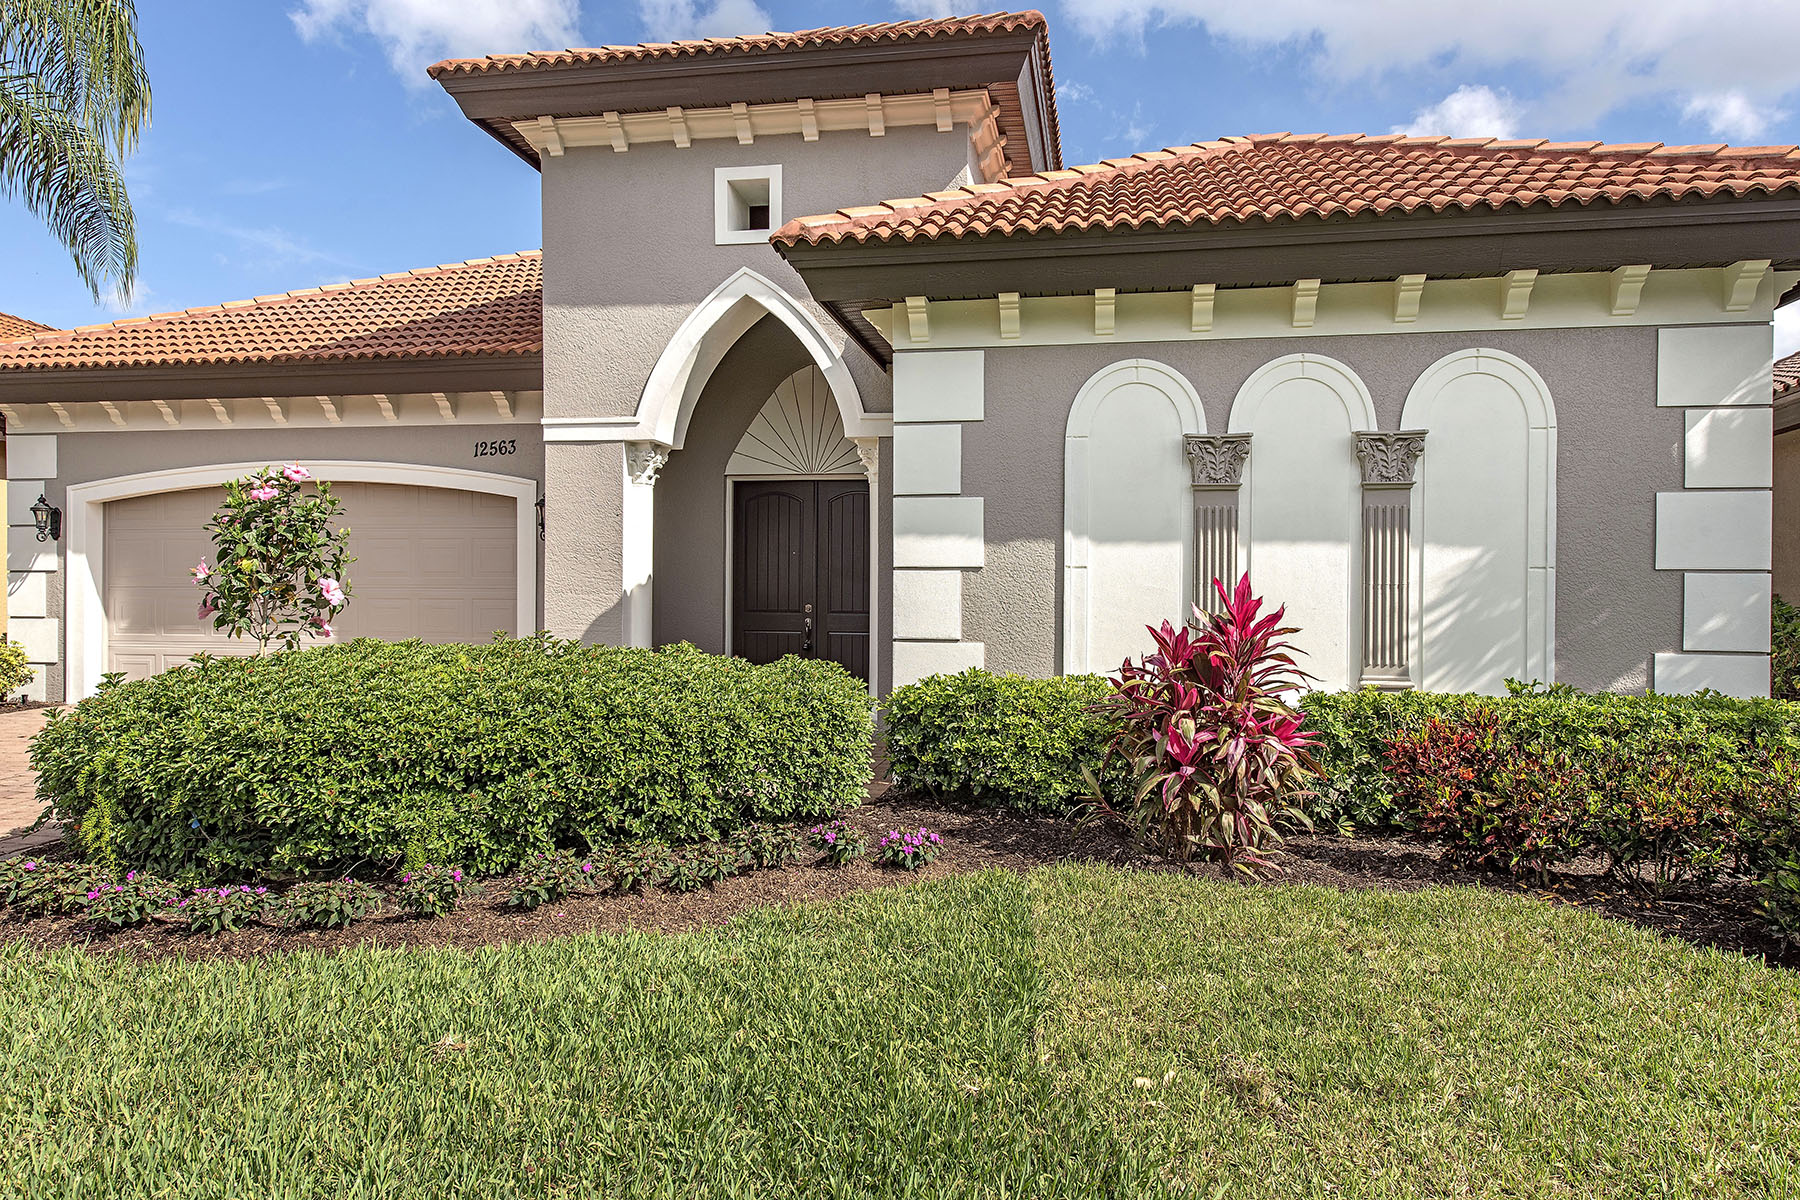 Single Family Homes for Sale at ESTERO 12563 Grandezza Circle, Estero, Florida 33928 United States